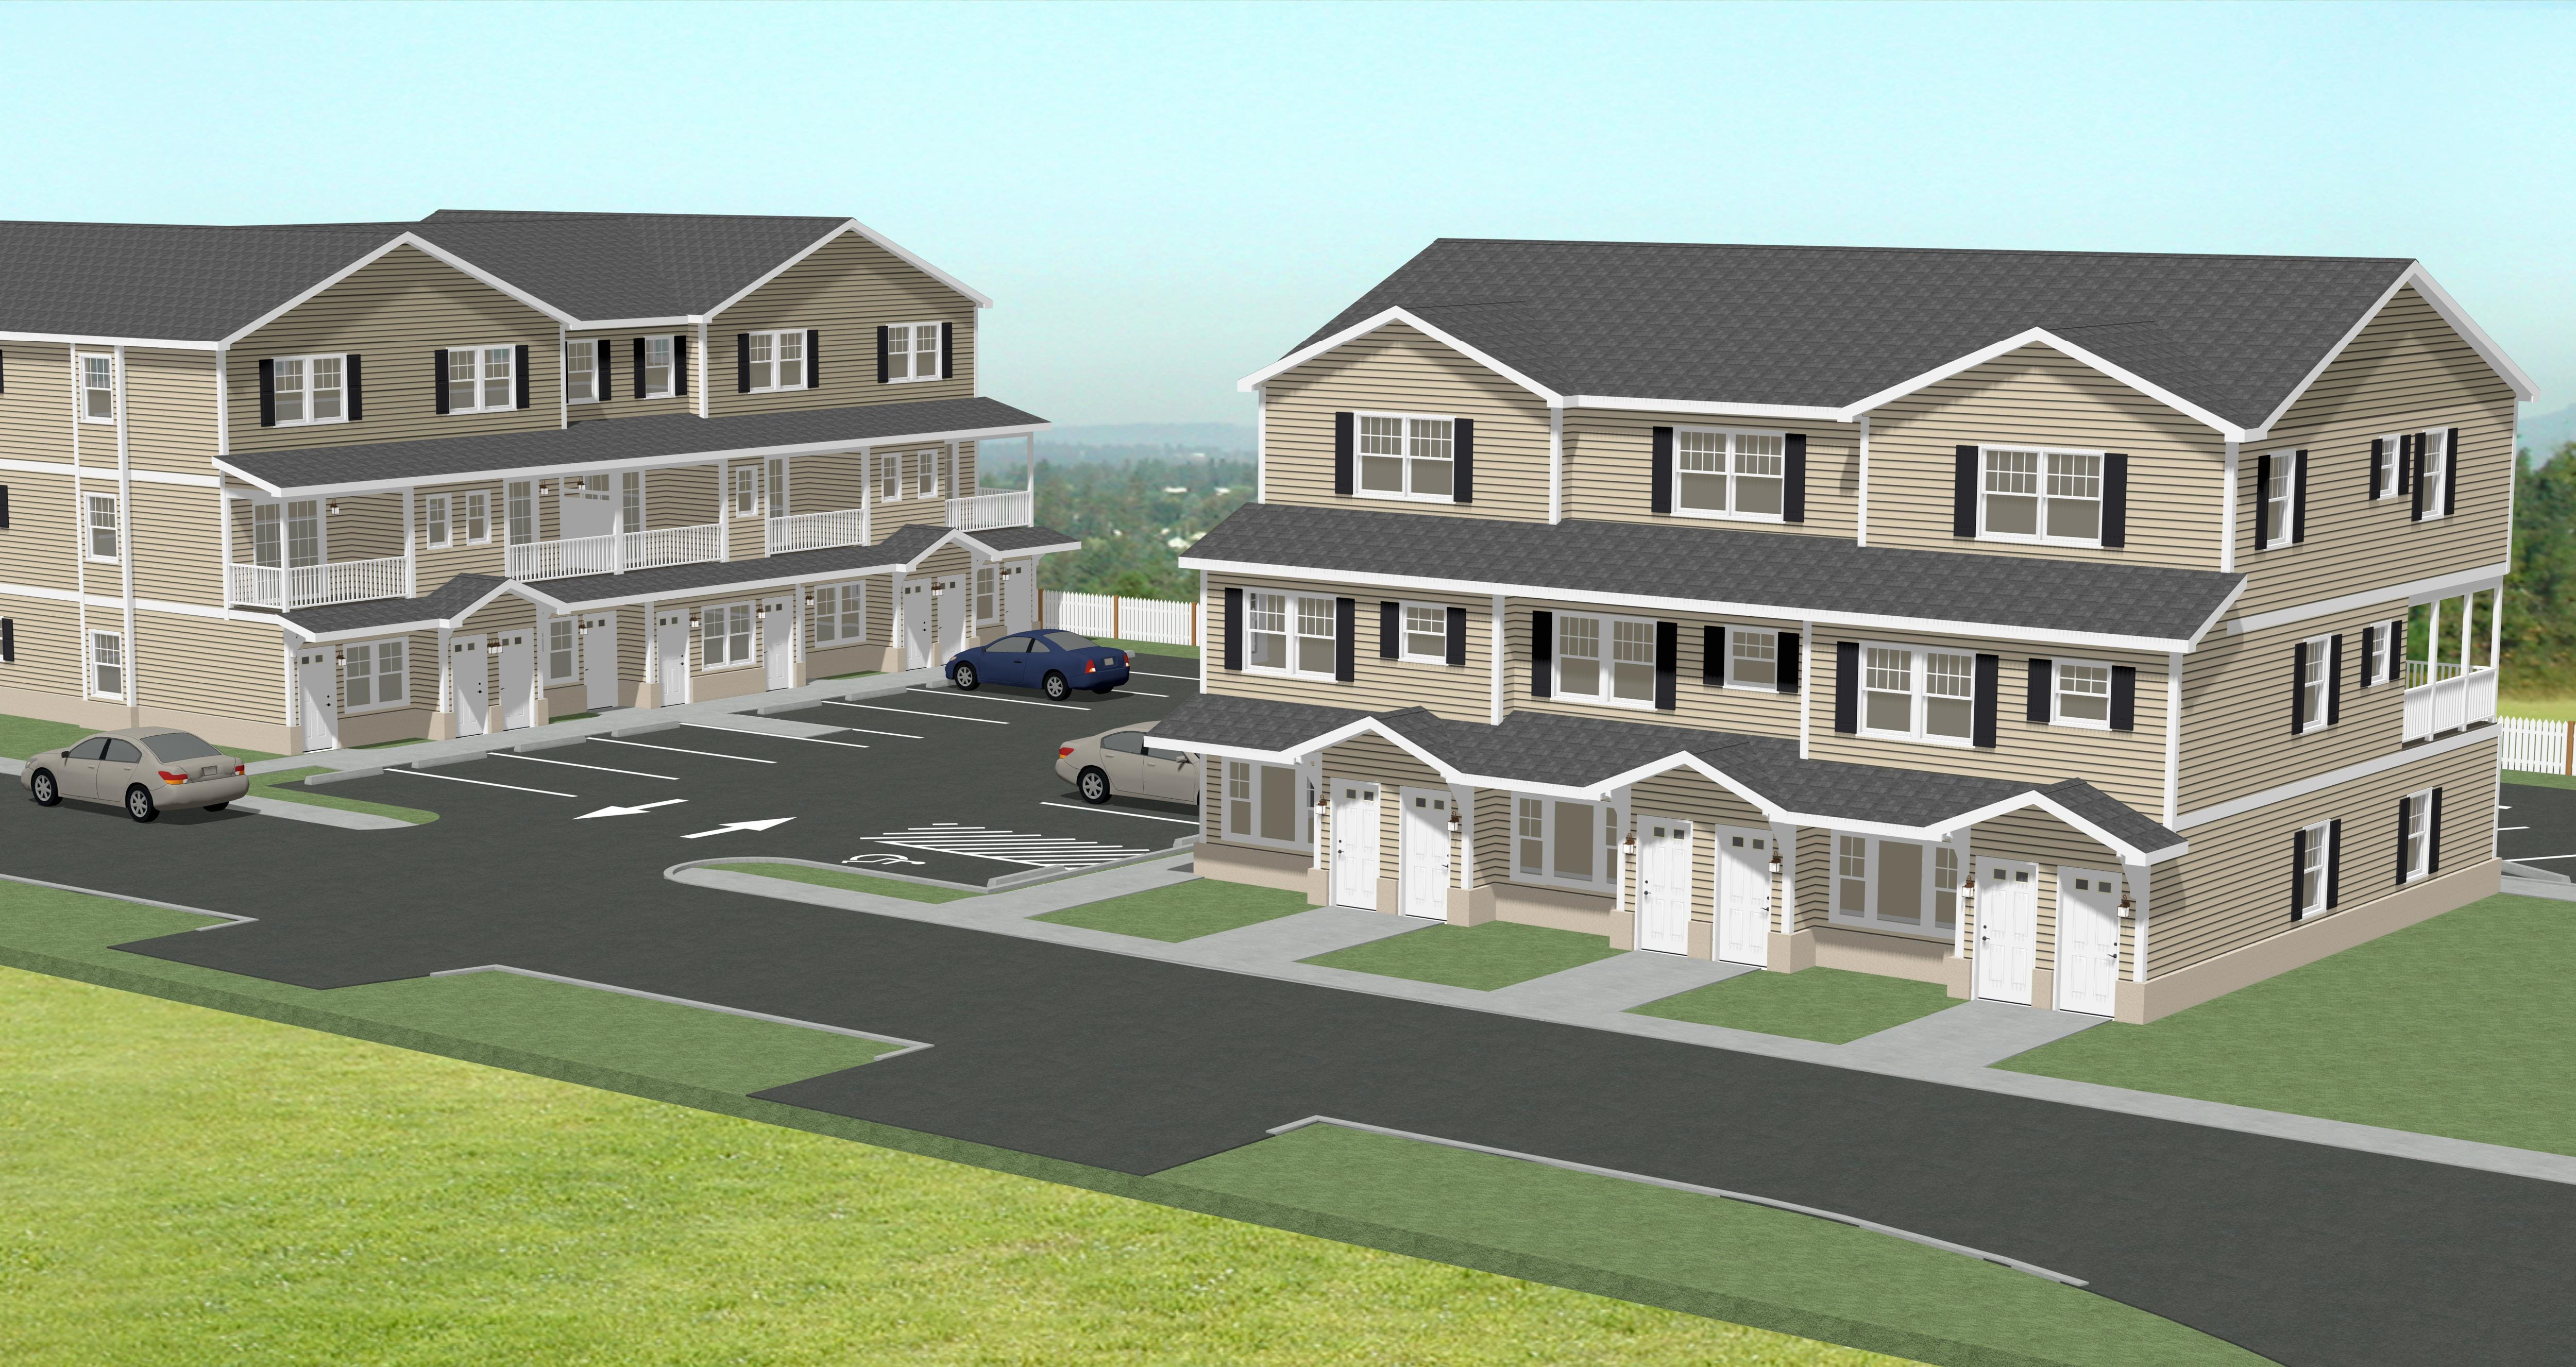 Westchester county affordable housing allocation plan